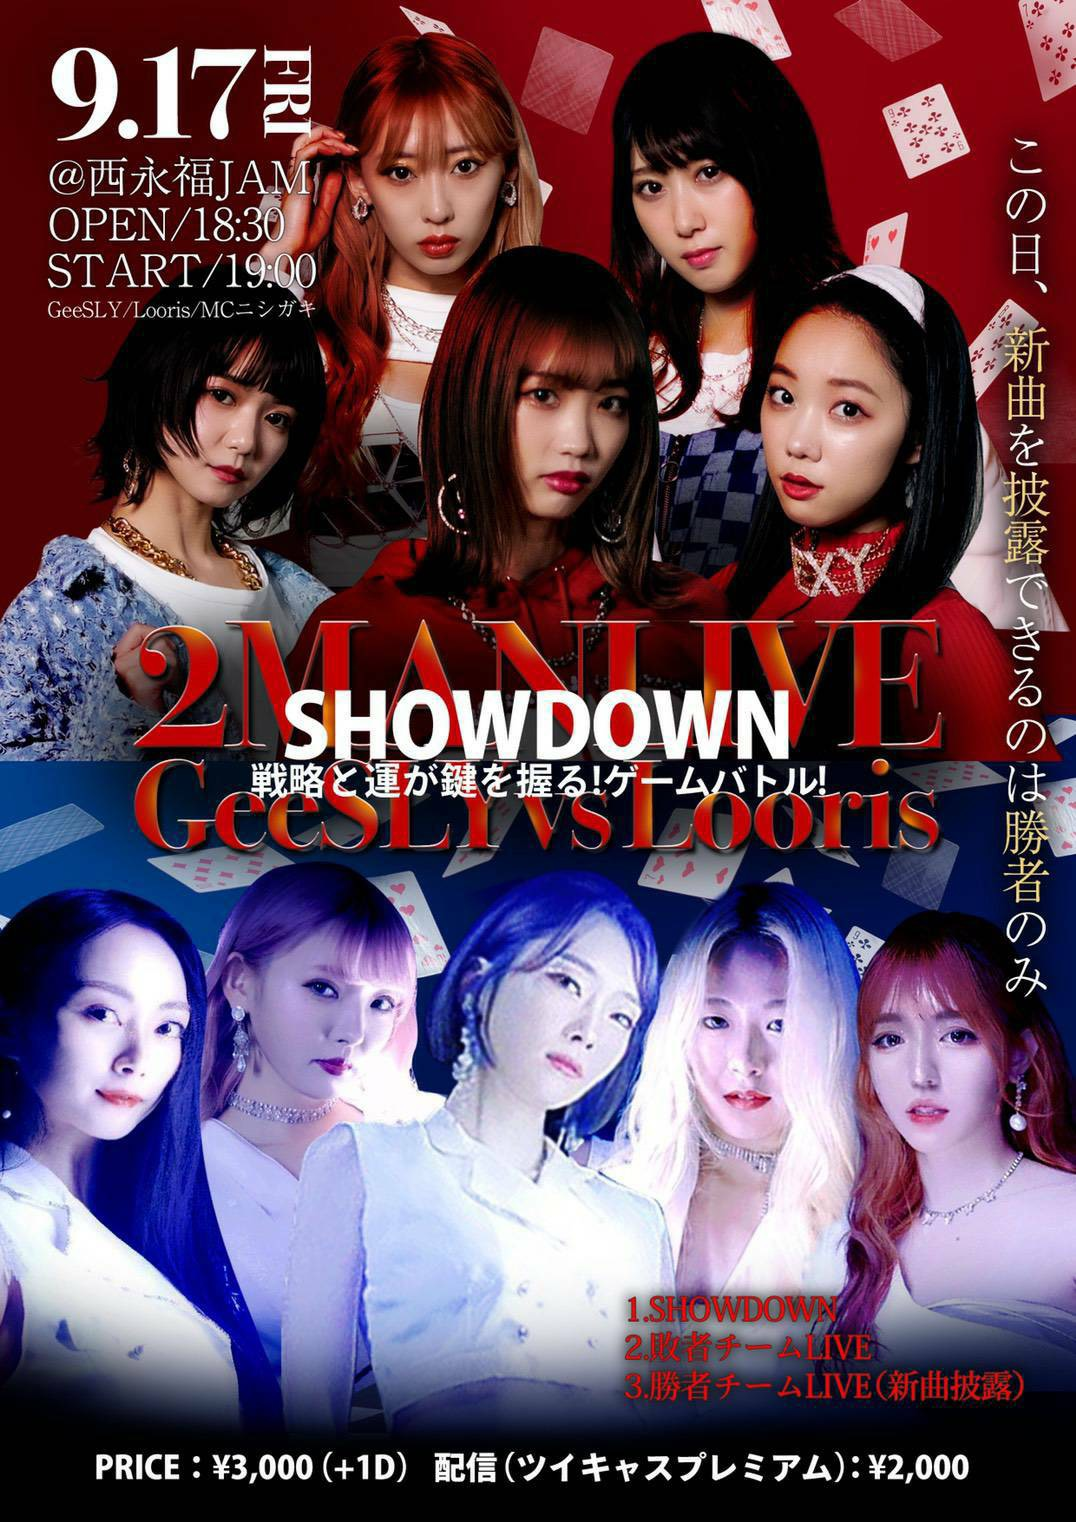 GeeSLY presents 2MANLIVE 「Showdown」